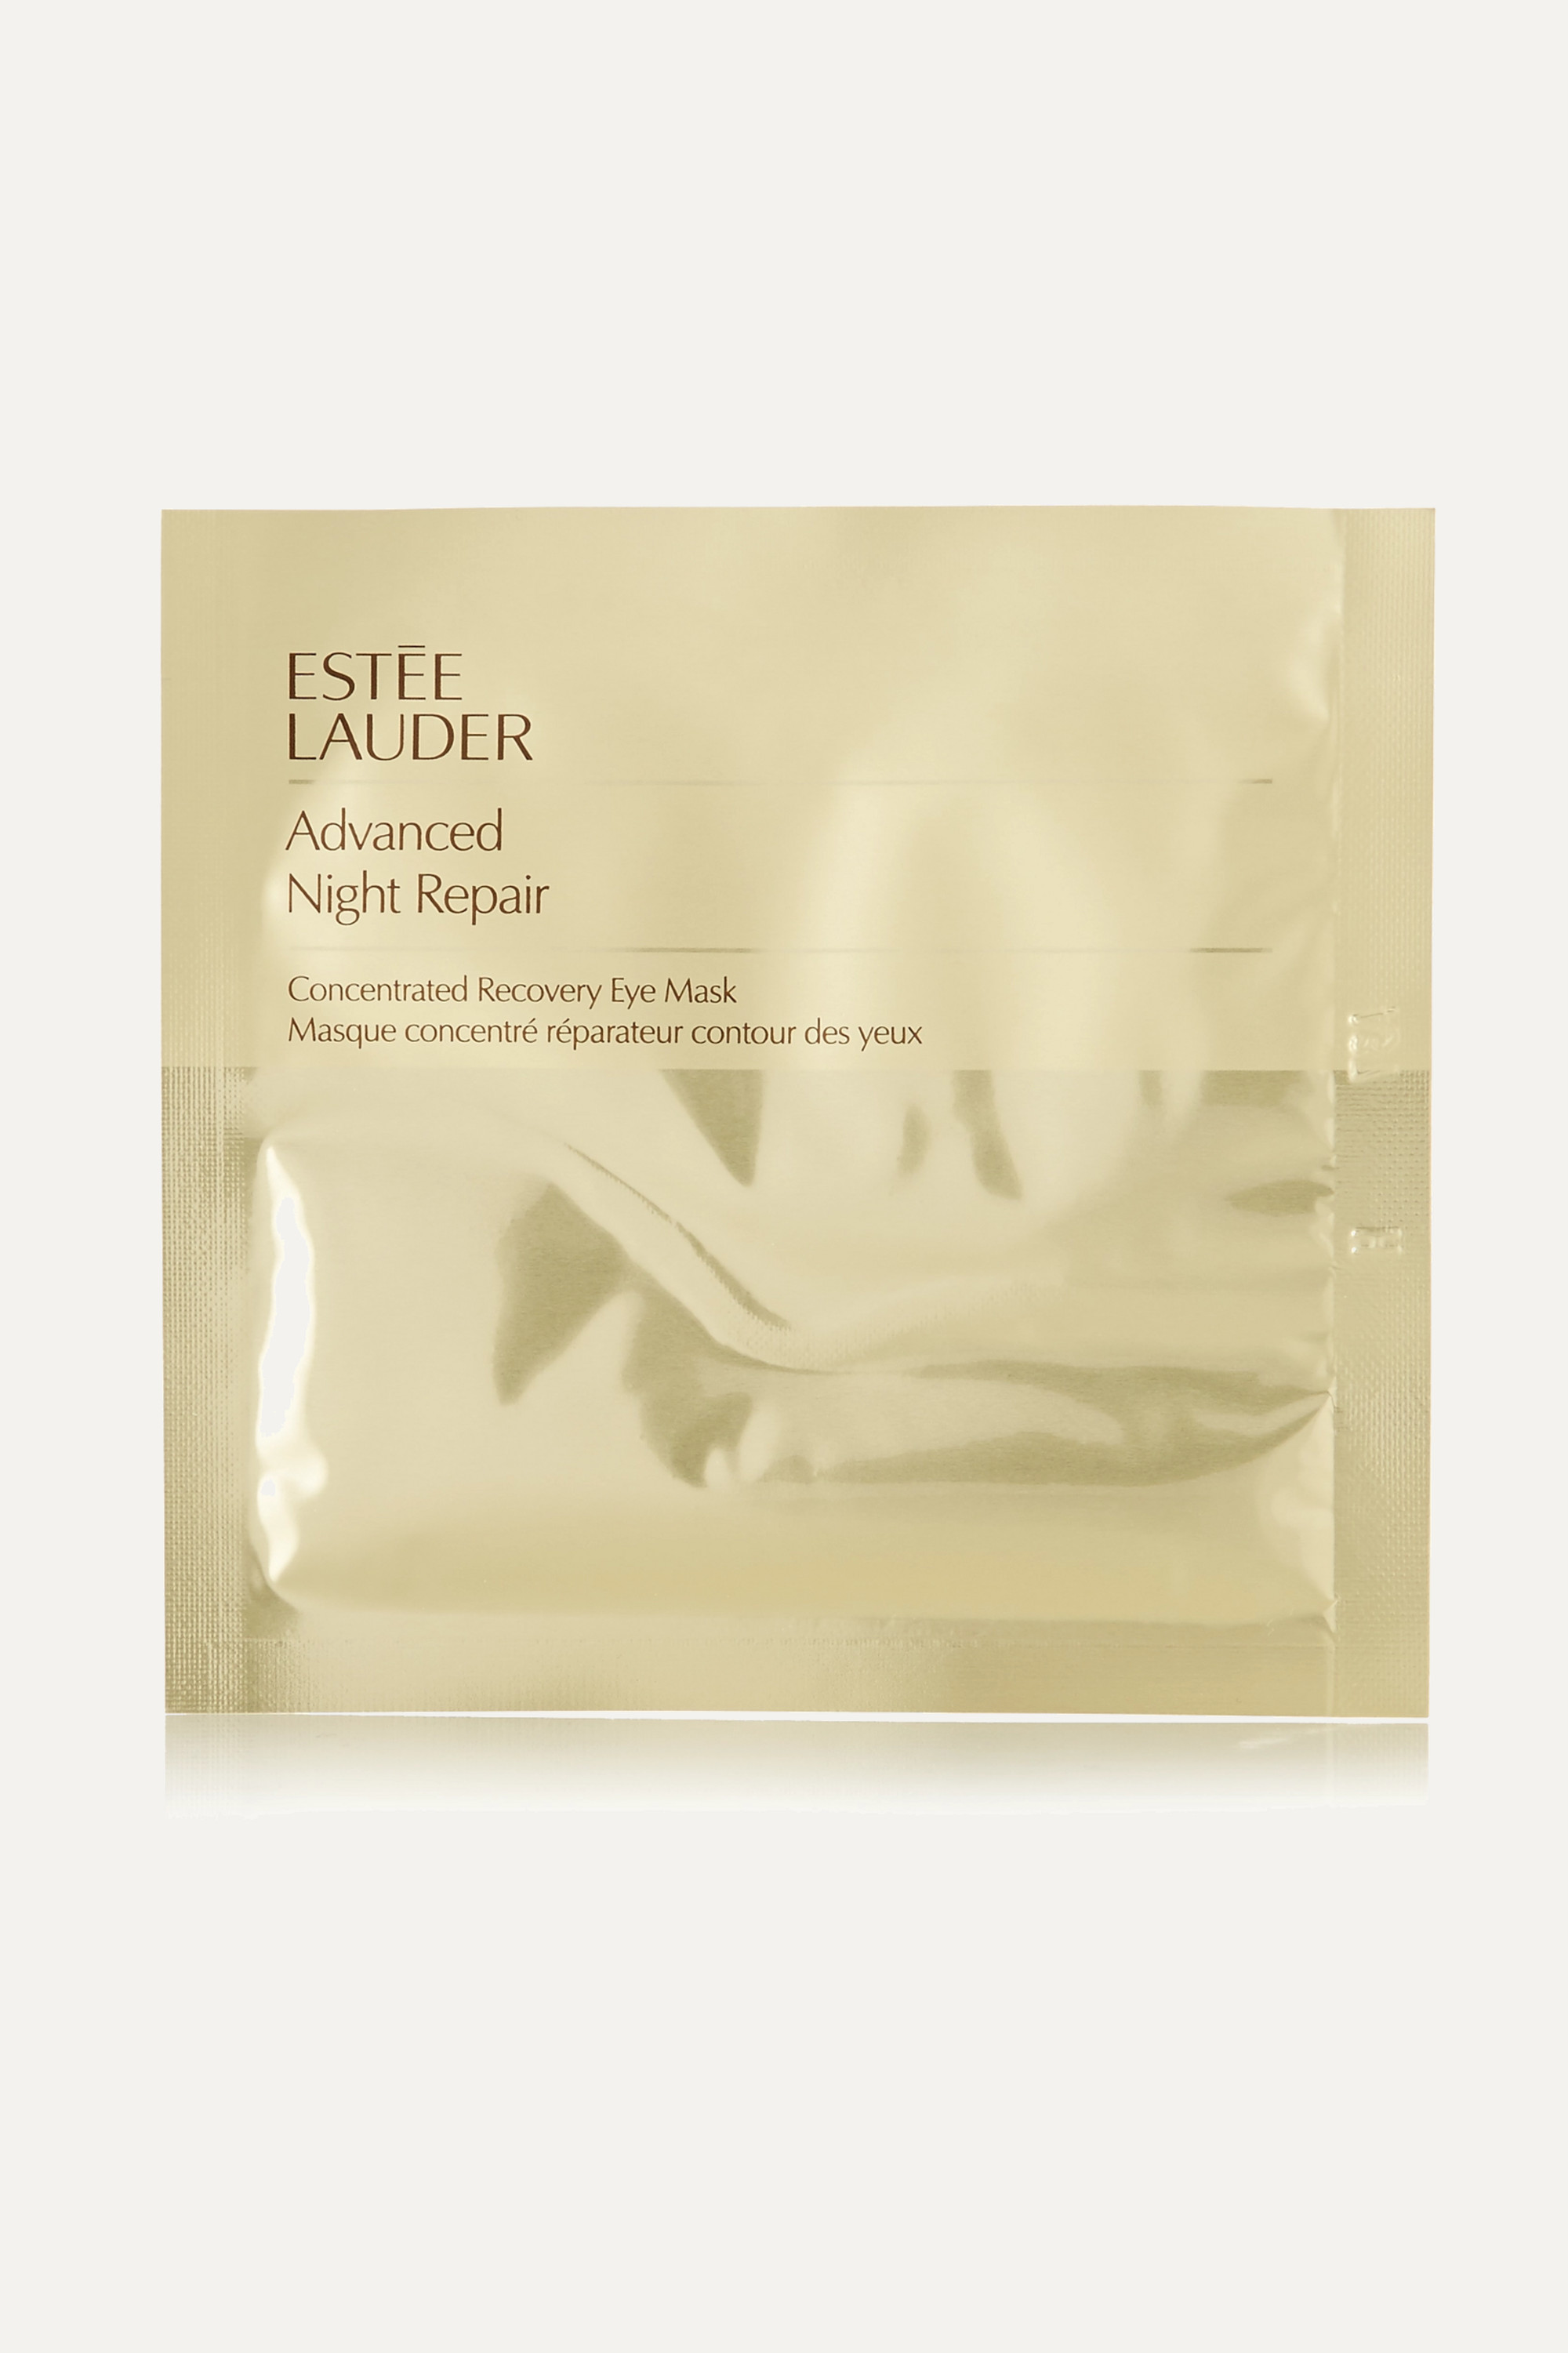 Colorless Advanced Night Repair Concentrated Recovery Eye Mask Estee Lauder Net A Porter